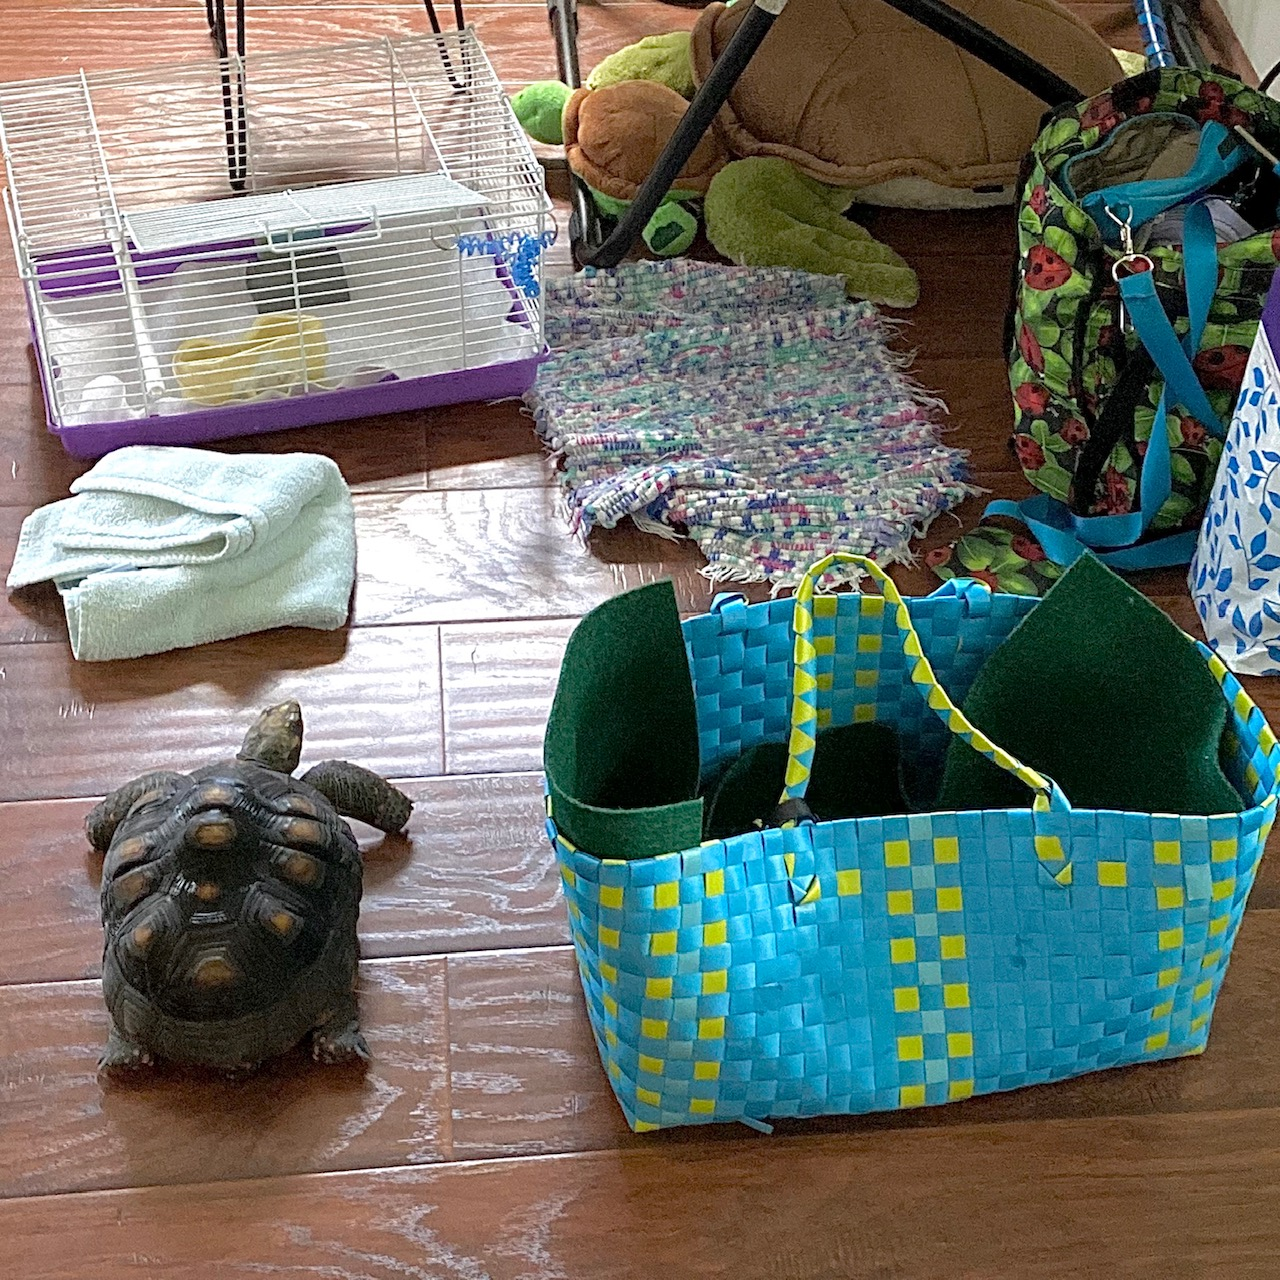 redfoot tortoise with carrier